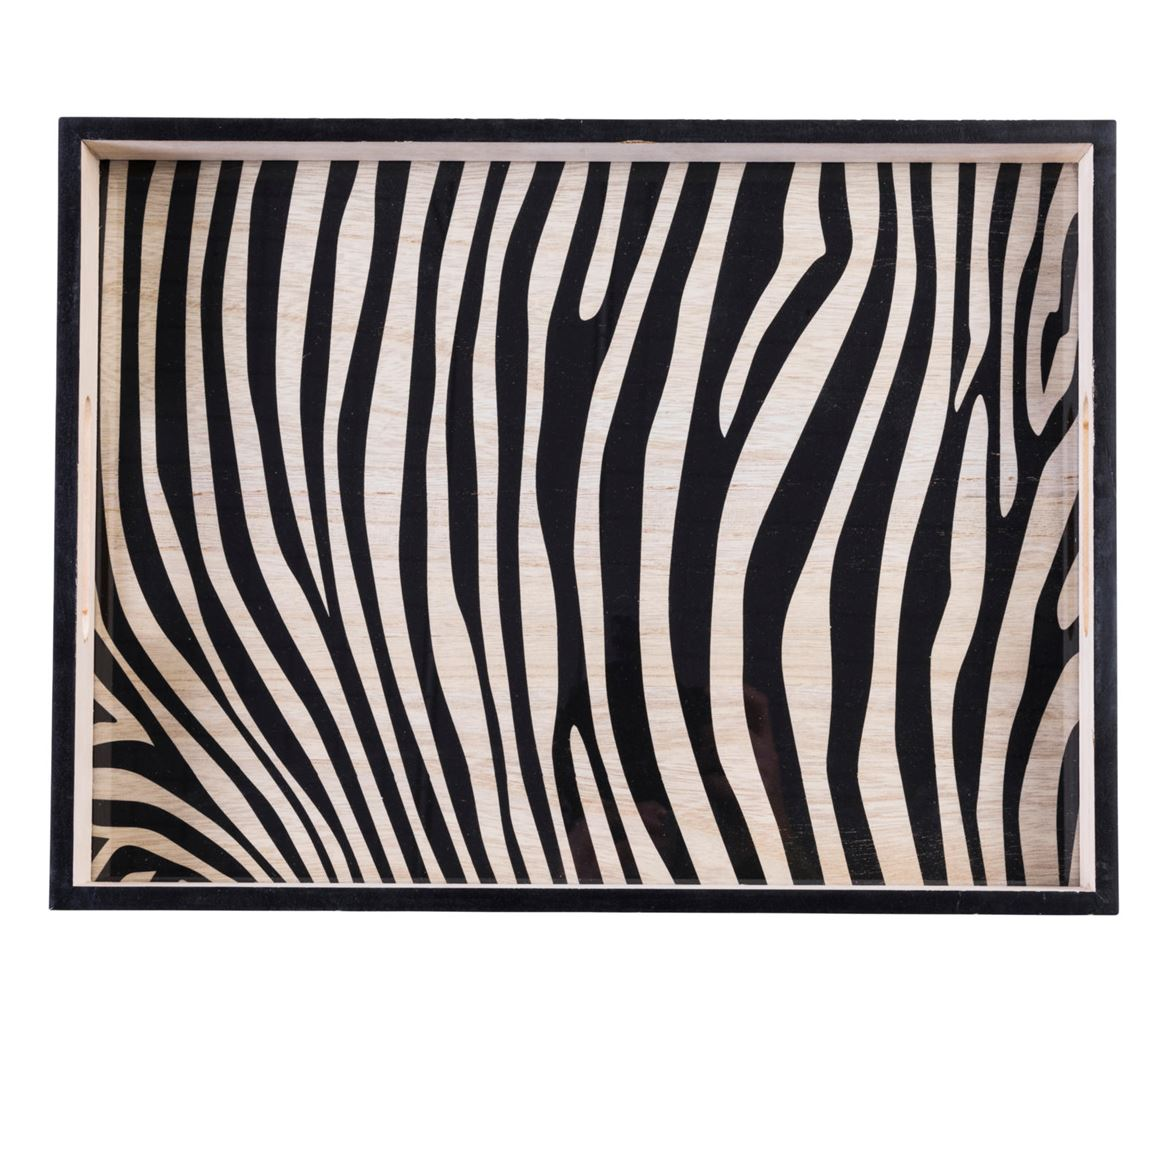 STRIPES Vassoio multicolore H 5 x W 40 x D 30 cm_stripes-vassoio-multicolore-h-5-x-w-40-x-d-30-cm